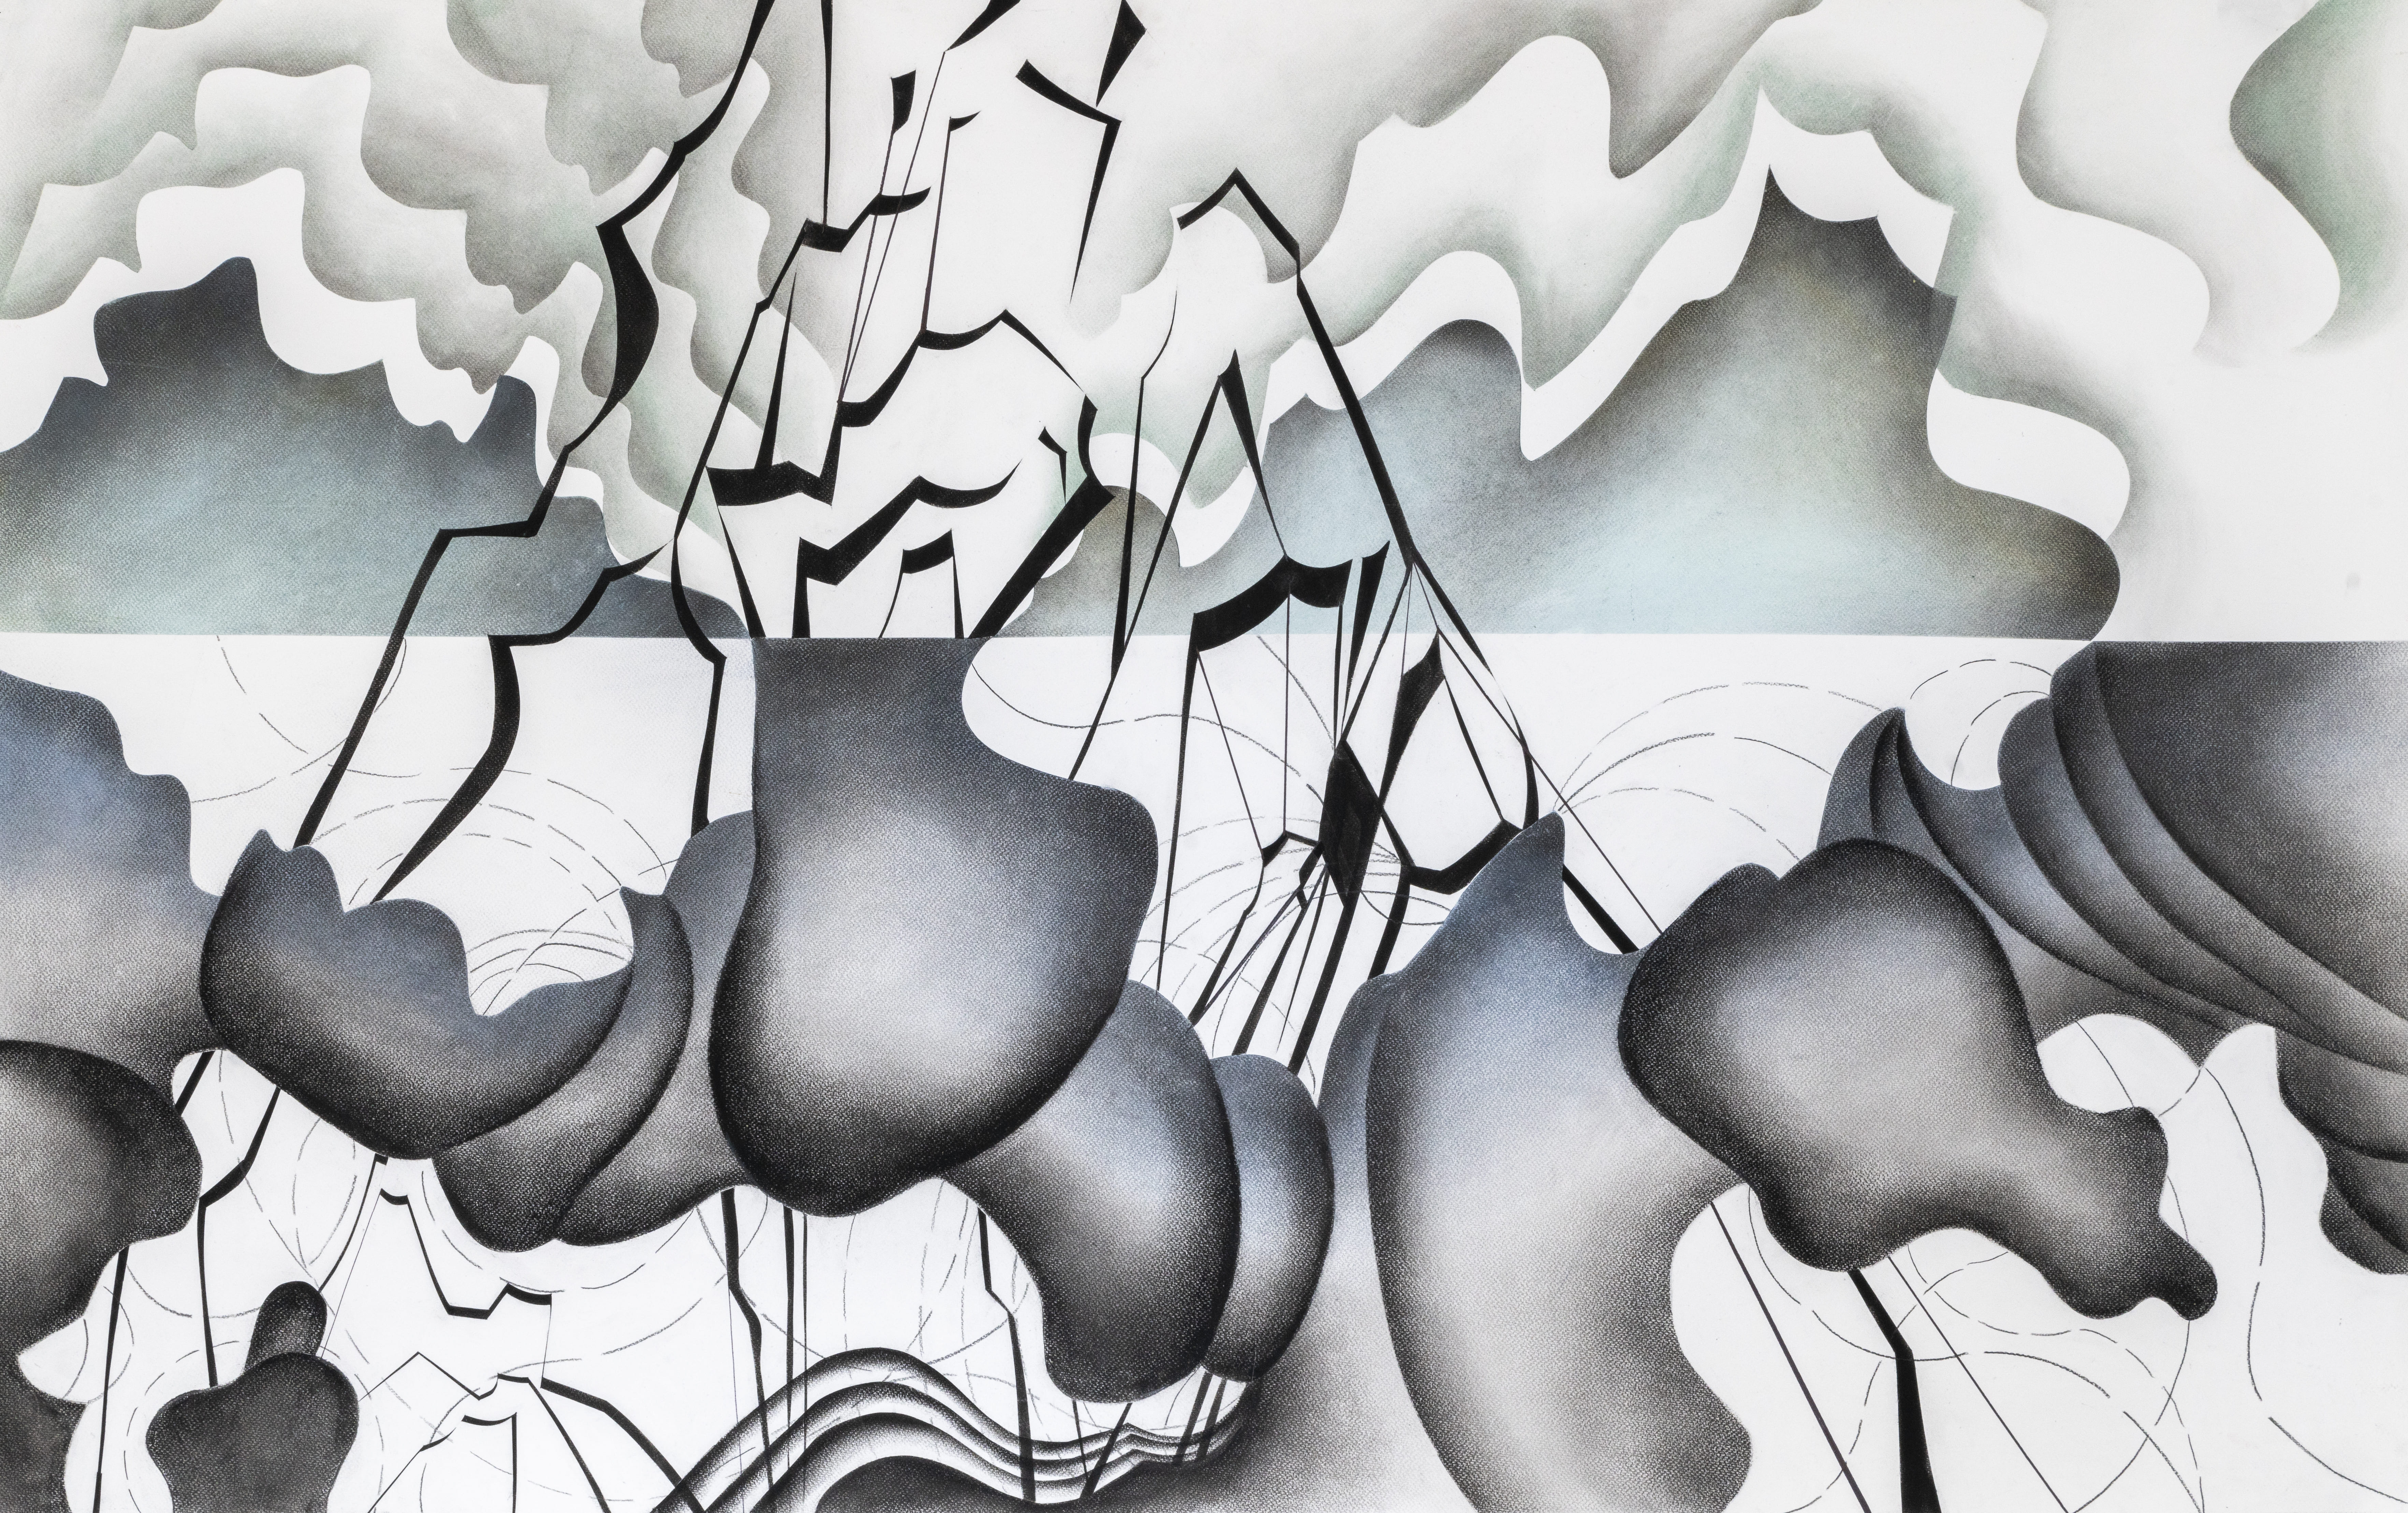 Judith Milberg: Life ist formed by the same material like mountains and clouds 2019, 90 x 150 cm